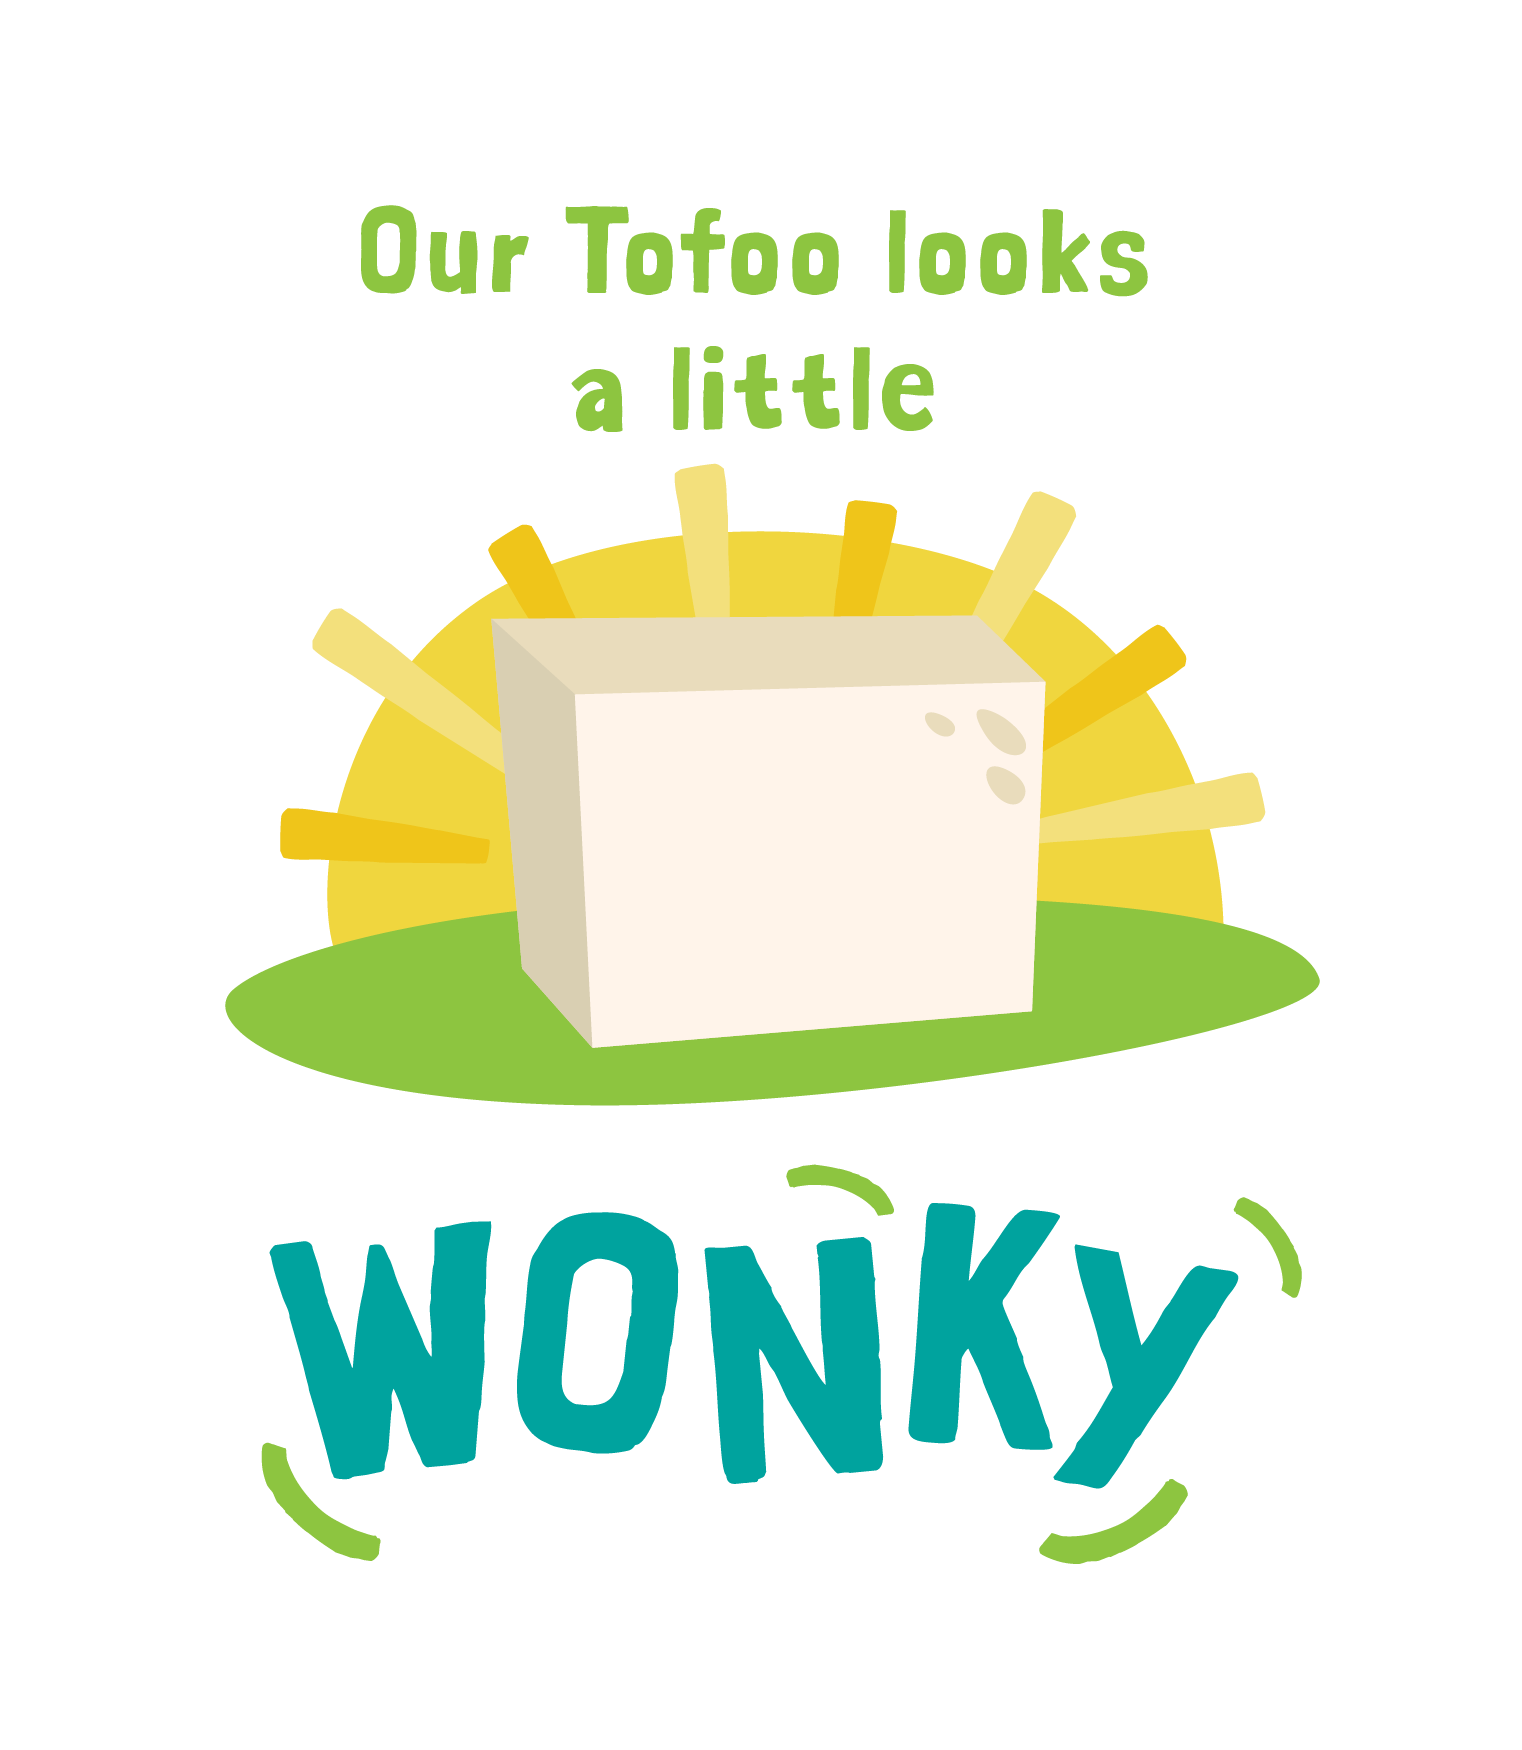 Our tofu is wonky because it's handmade